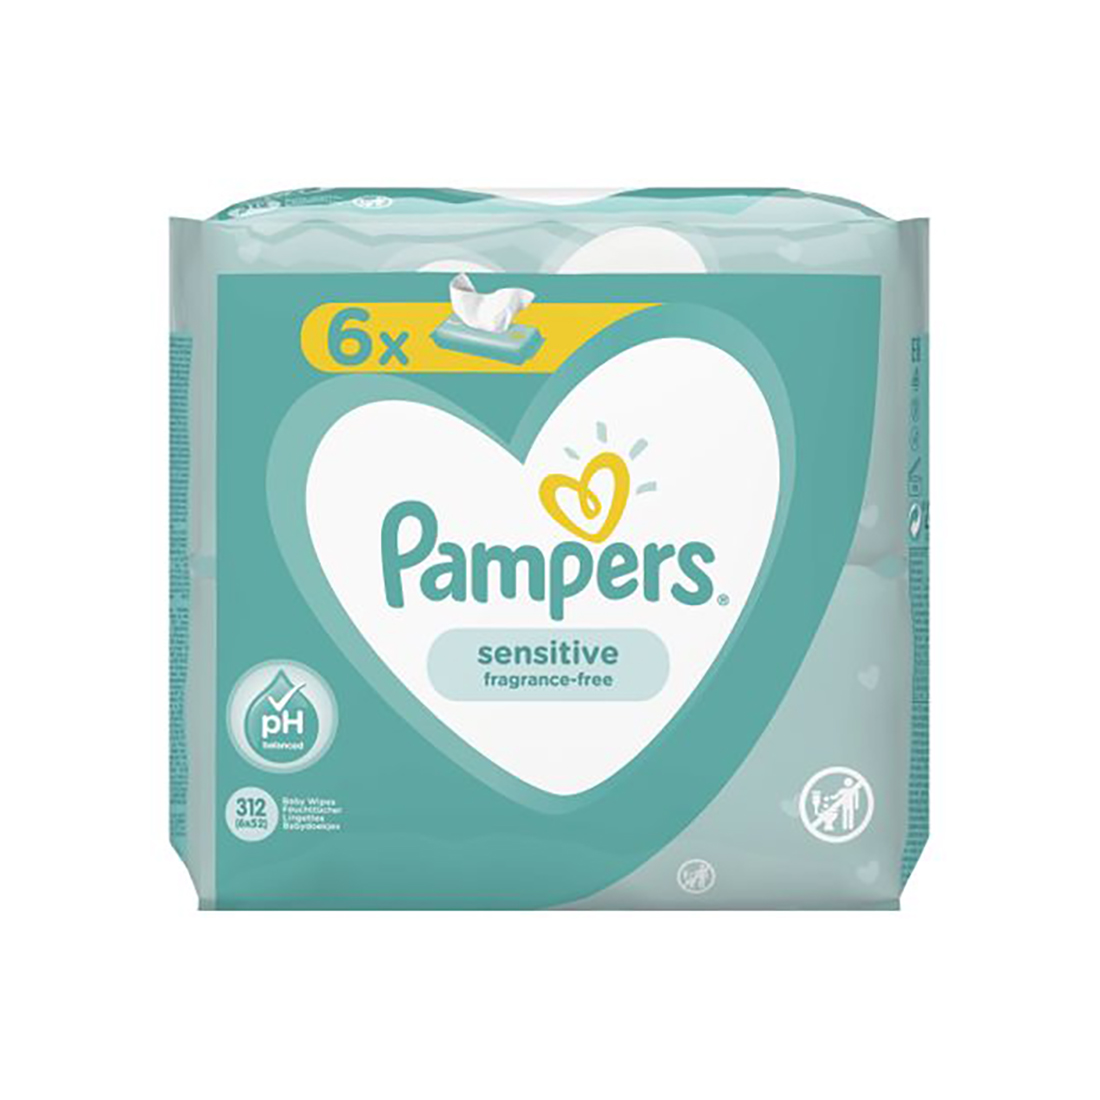 Servetele umede Pampers Sensitive, 6 Pachete x 52 buc.